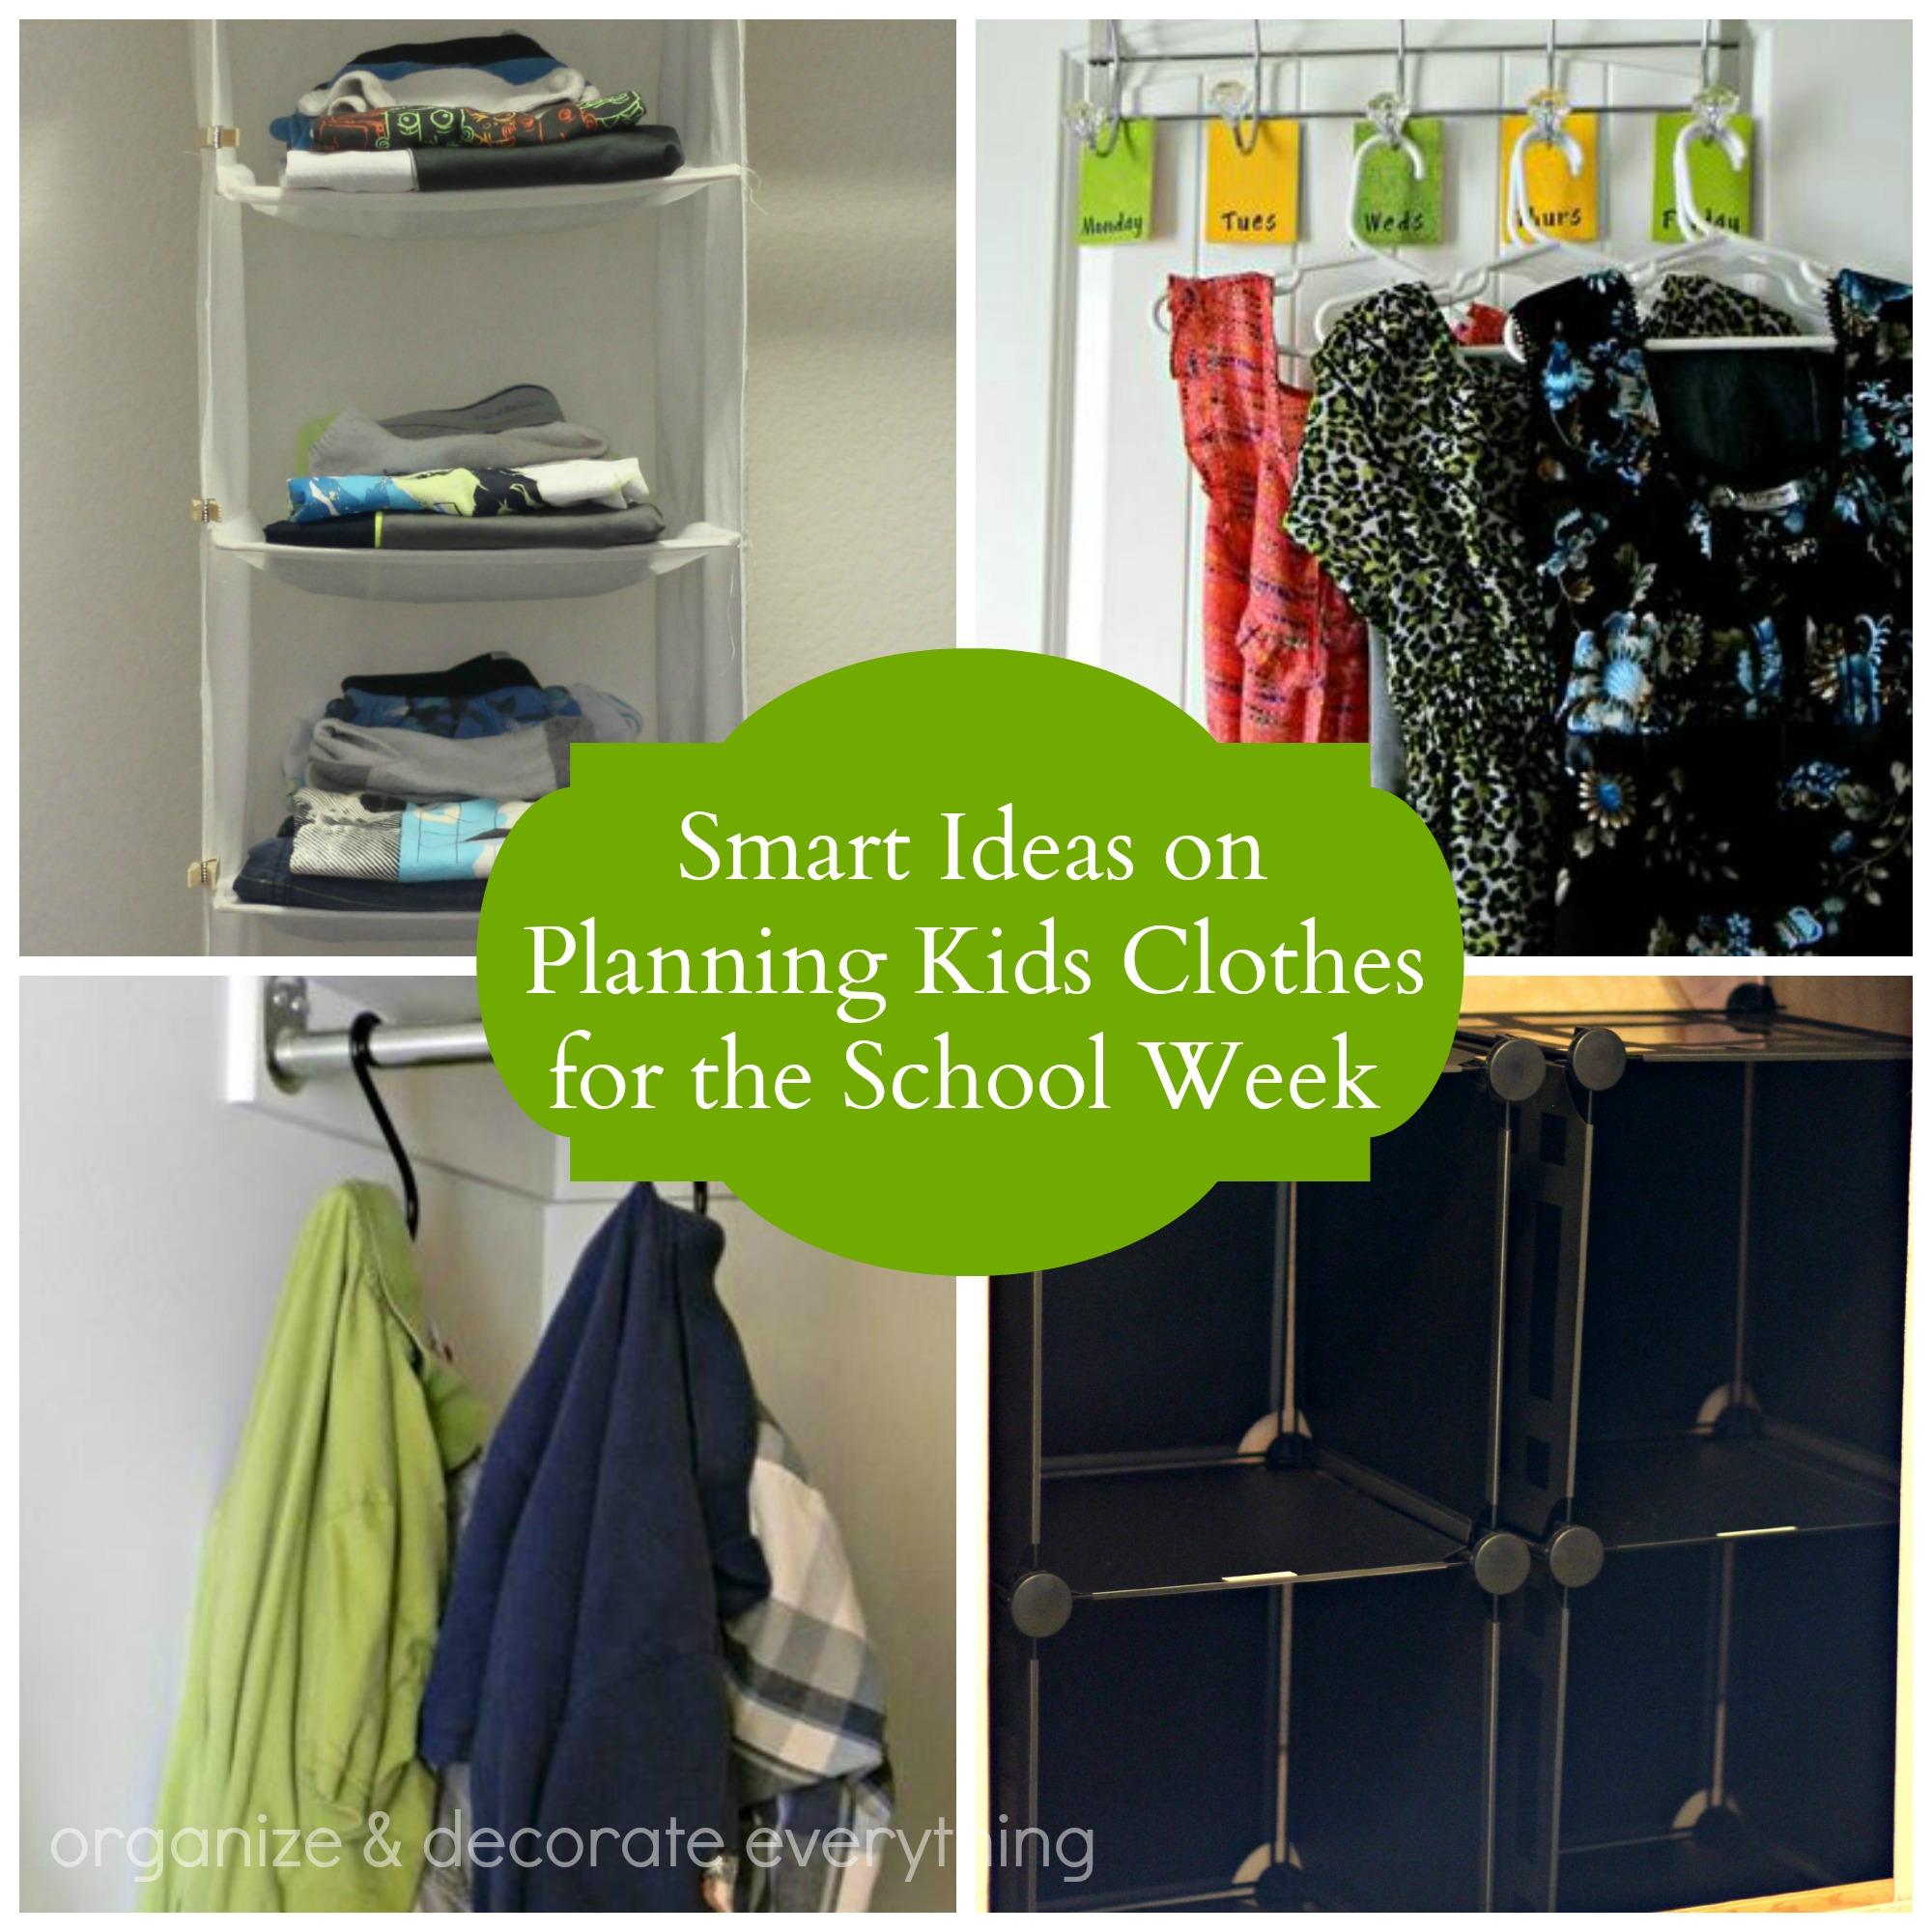 home yourself ana my white do it wardrobe pin closet from size projects just kids